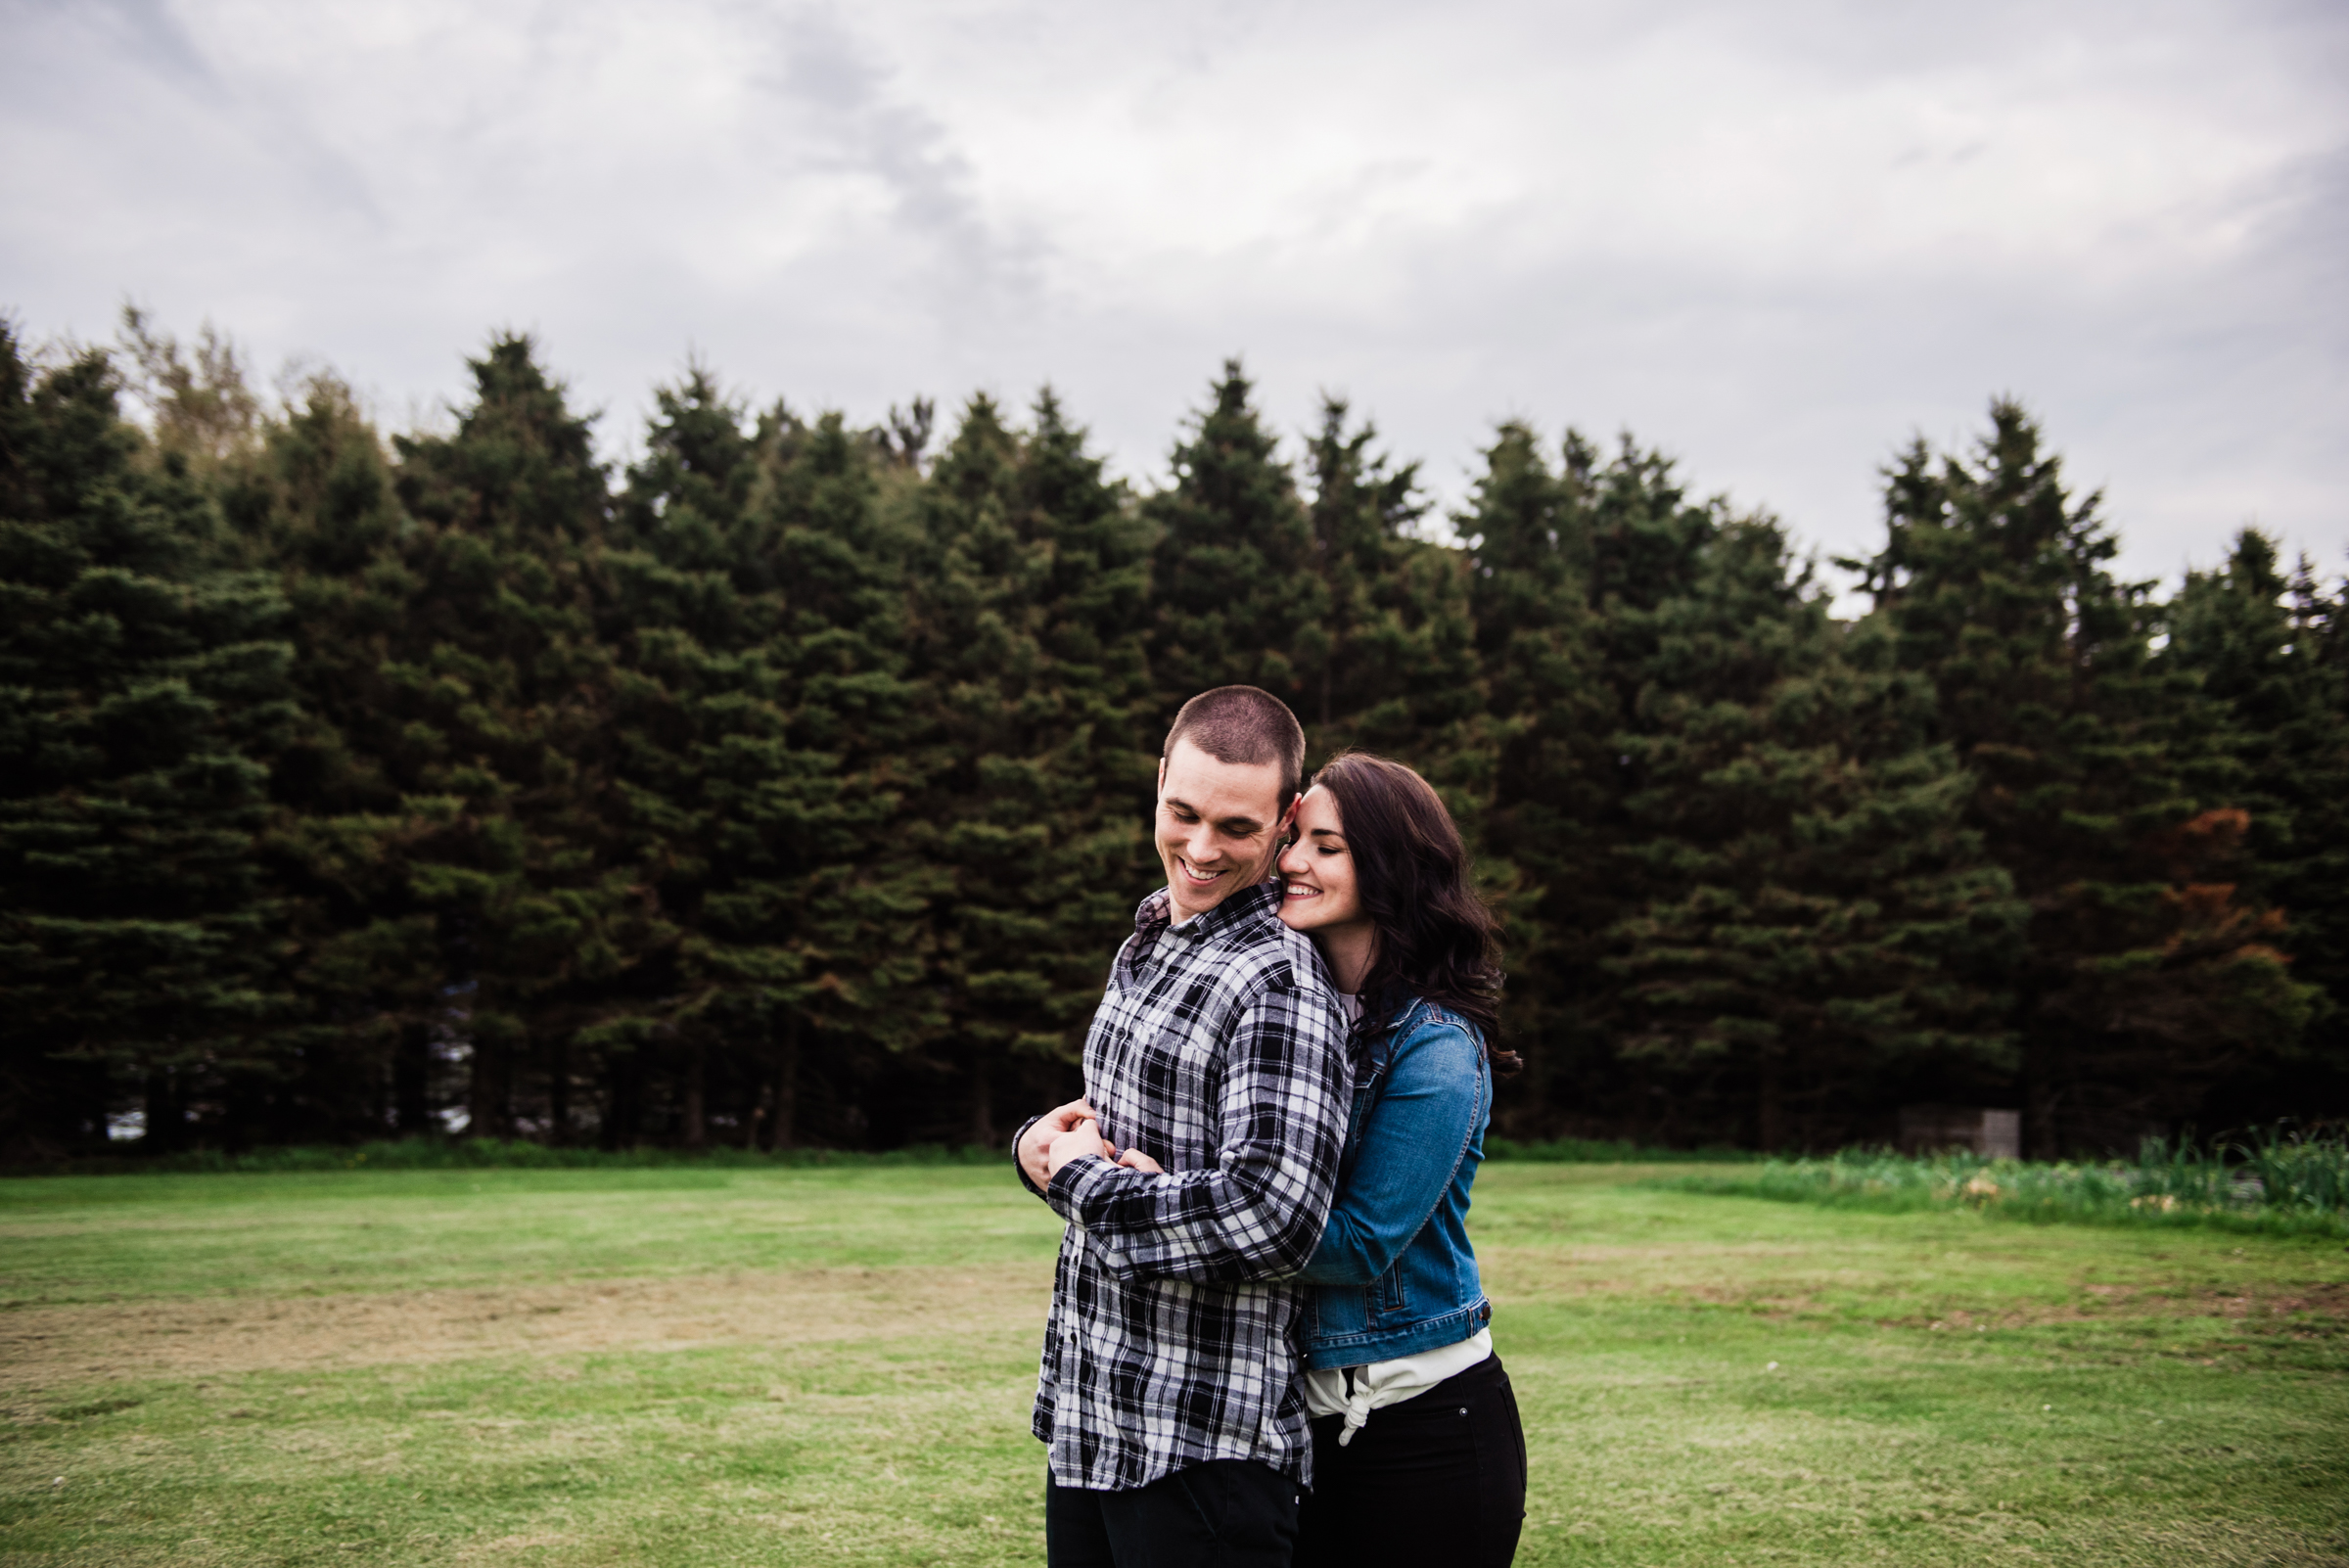 Fox_Farm_Rochester_Couples_Session_JILL_STUDIO_Rochester_NY_Photographer_DSC_7803.jpg